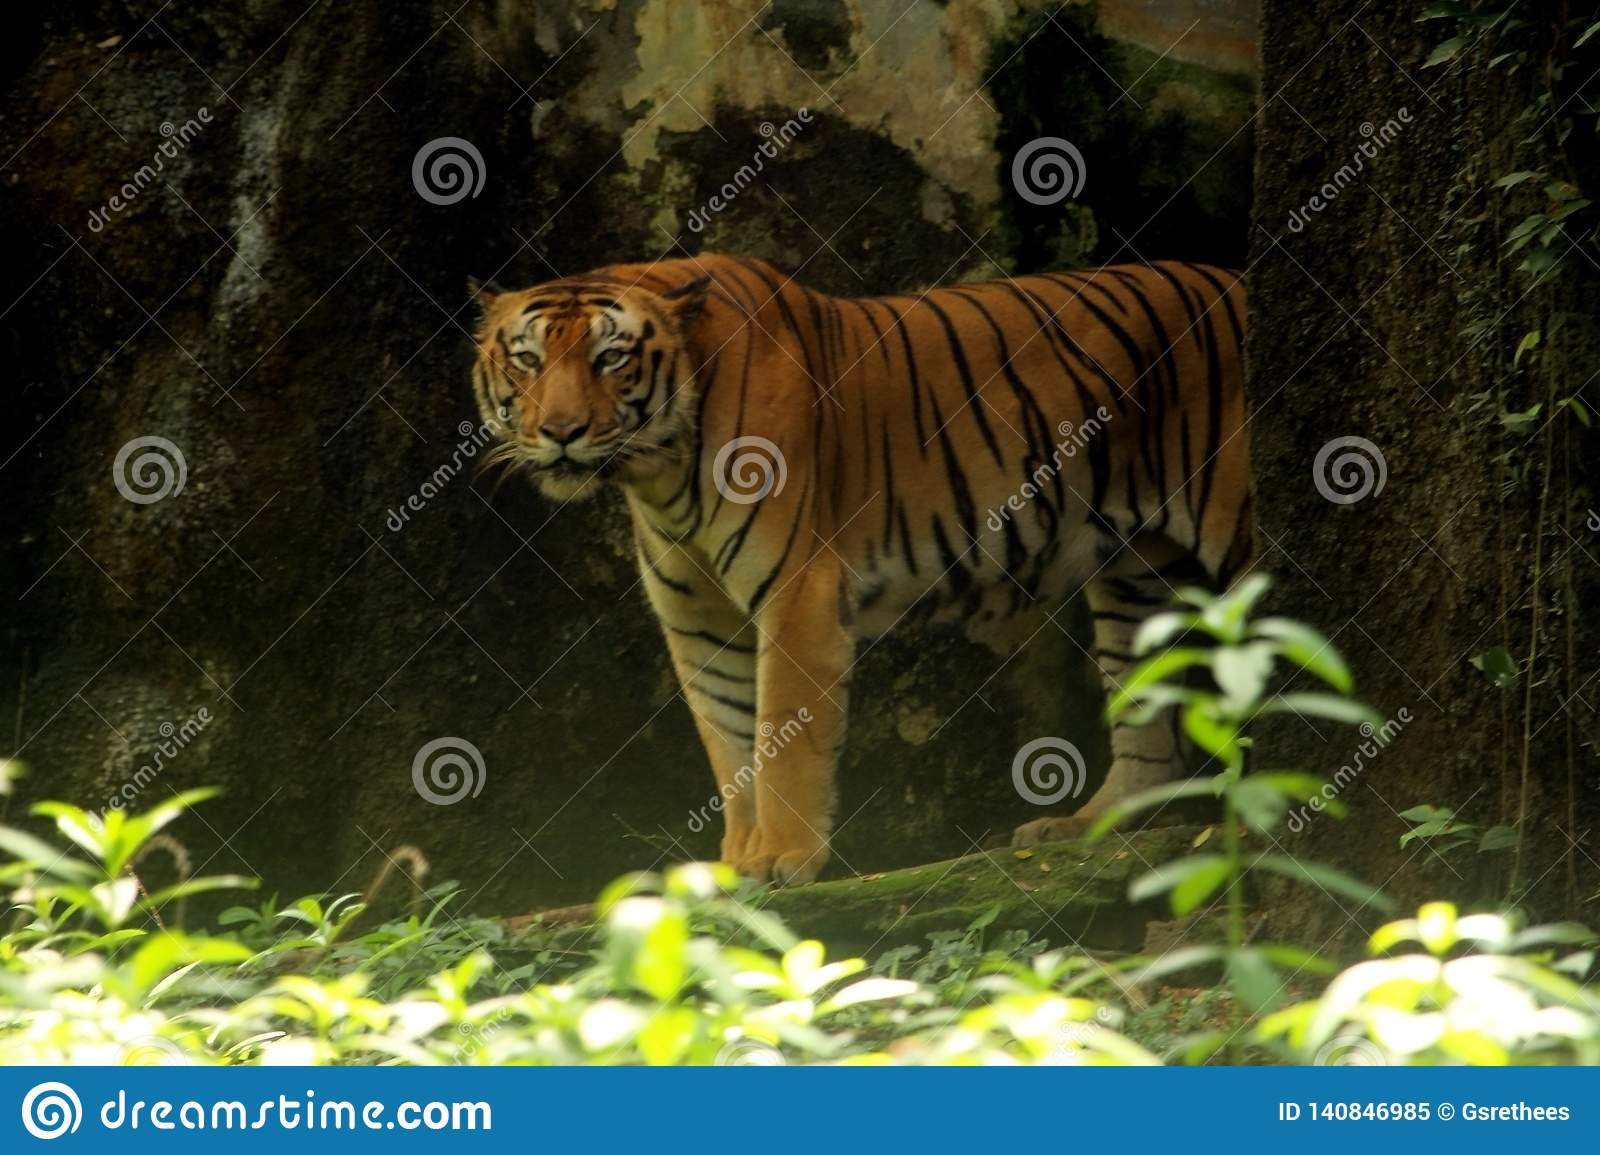 rainforest of the Asian tiger